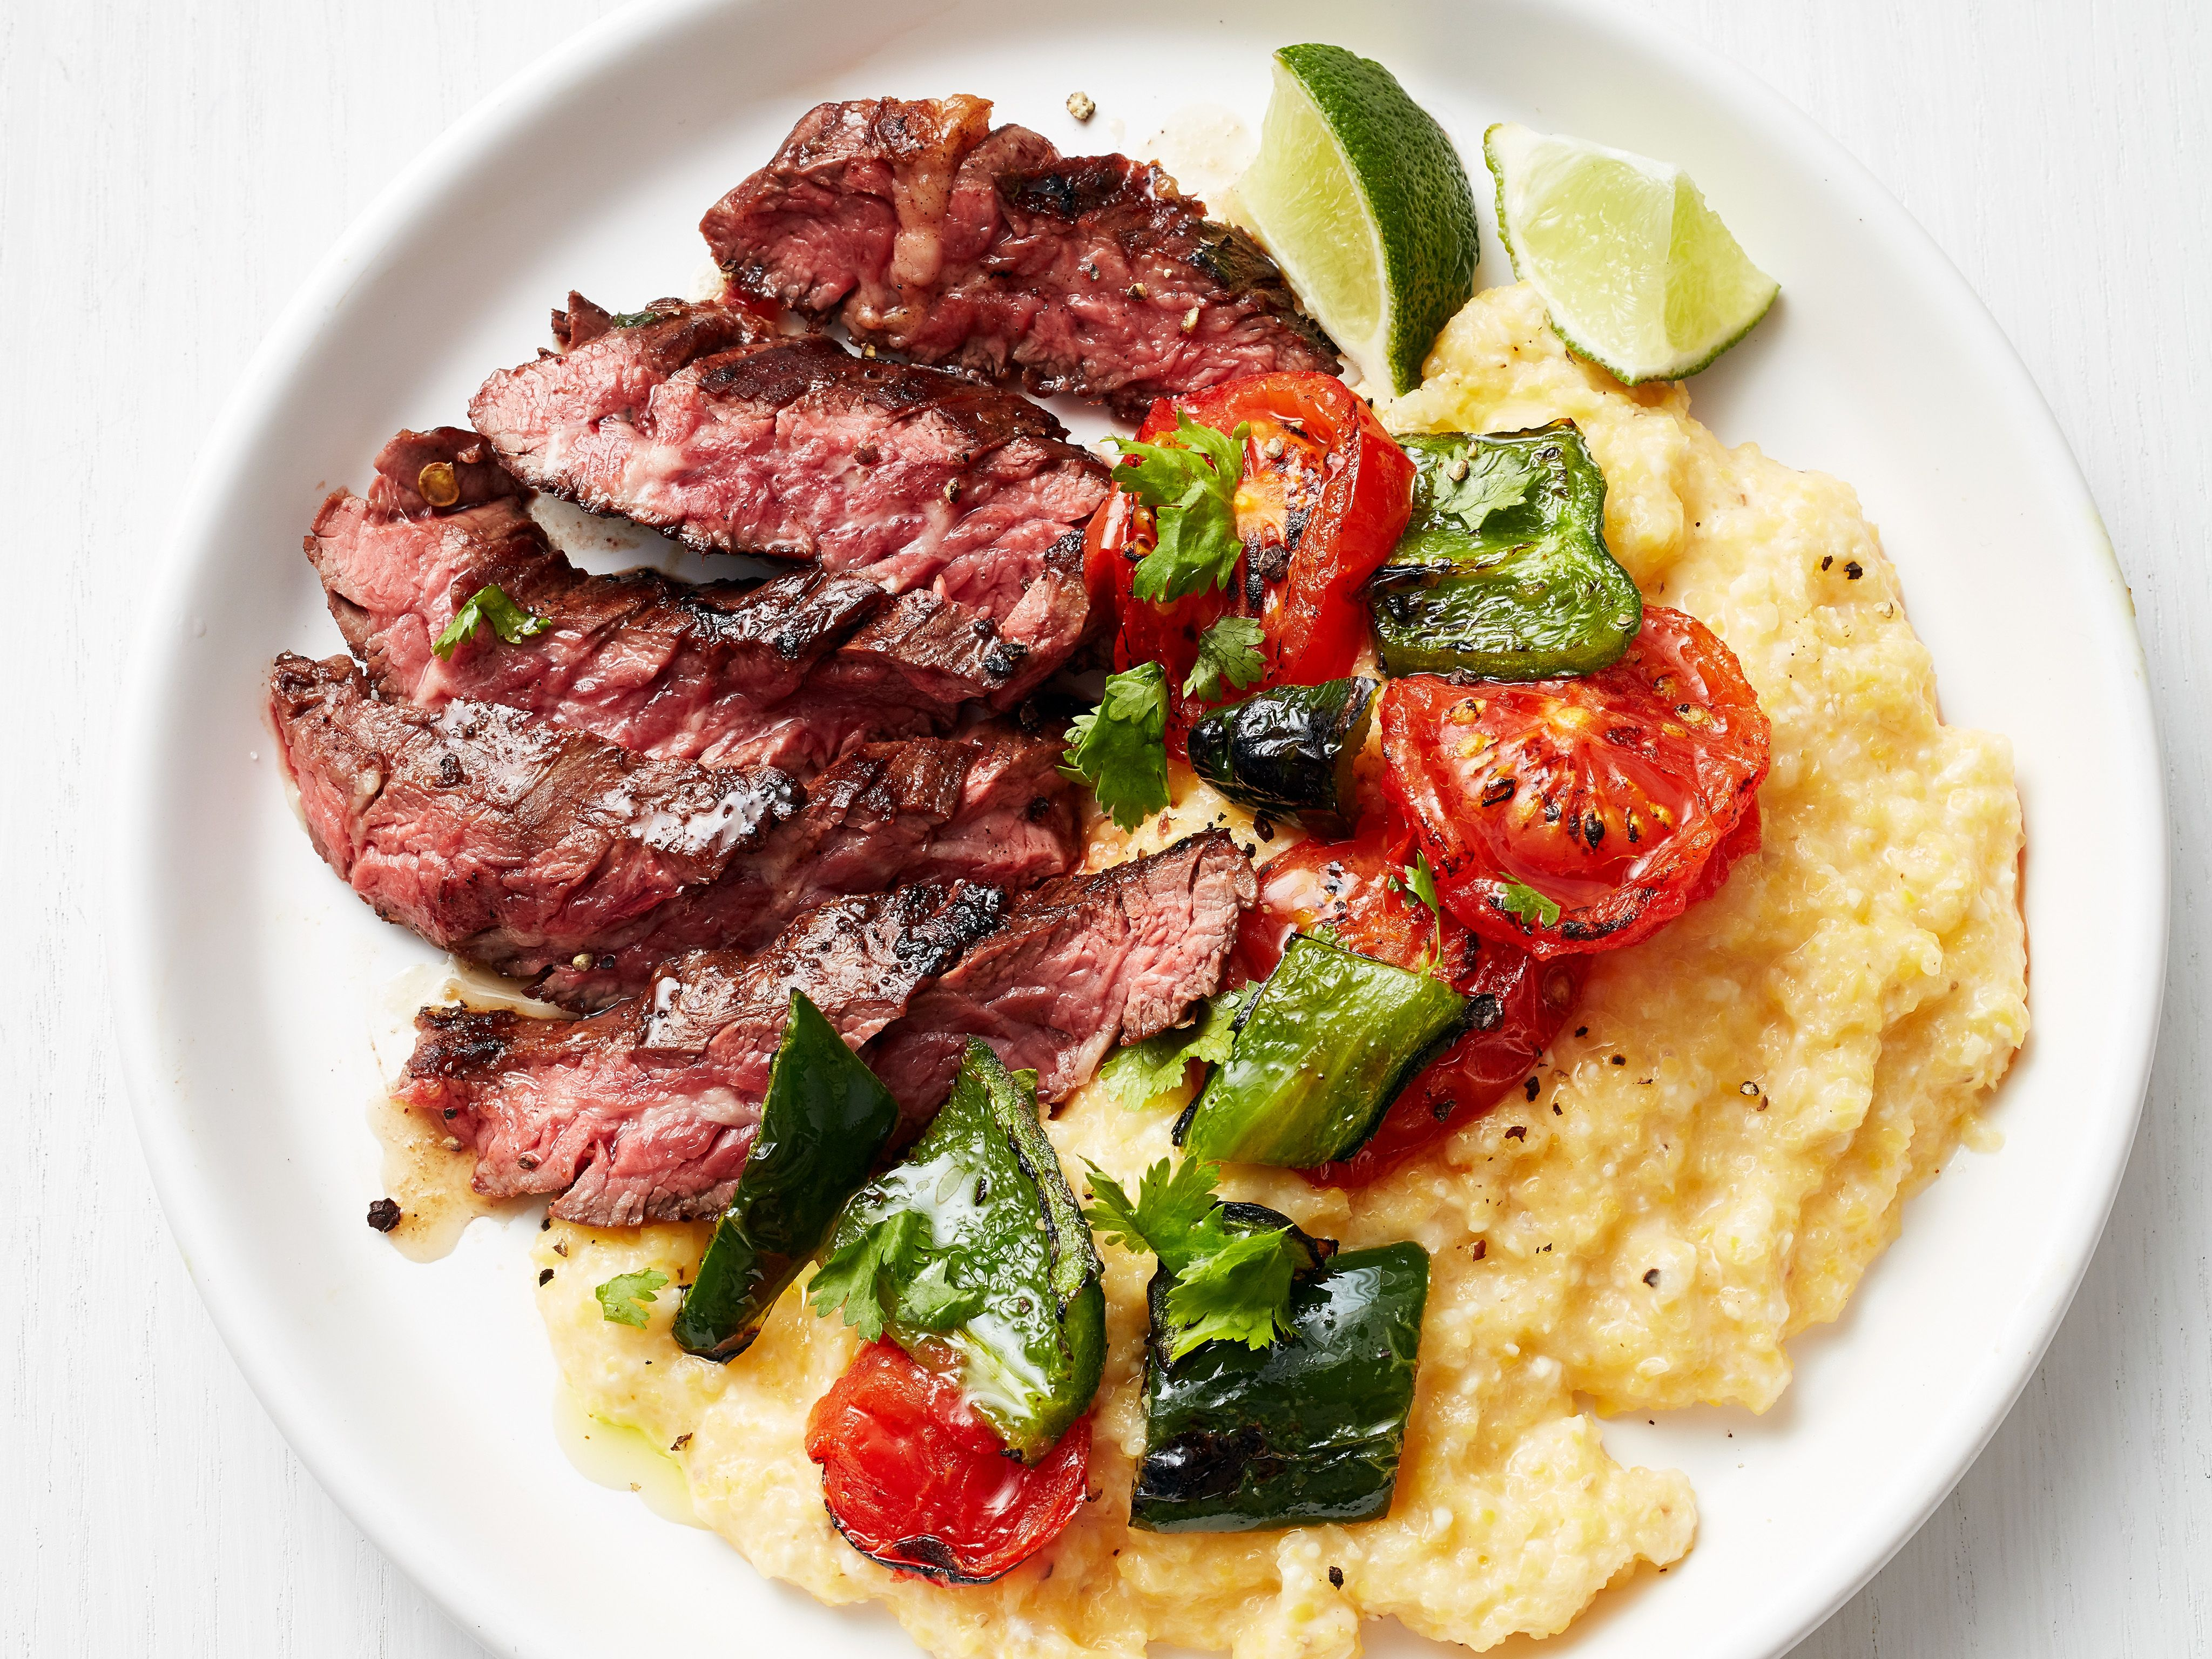 Discussion on this topic: Skirt Steak with Southwestern Creamed Corn, skirt-steak-with-southwestern-creamed-corn/